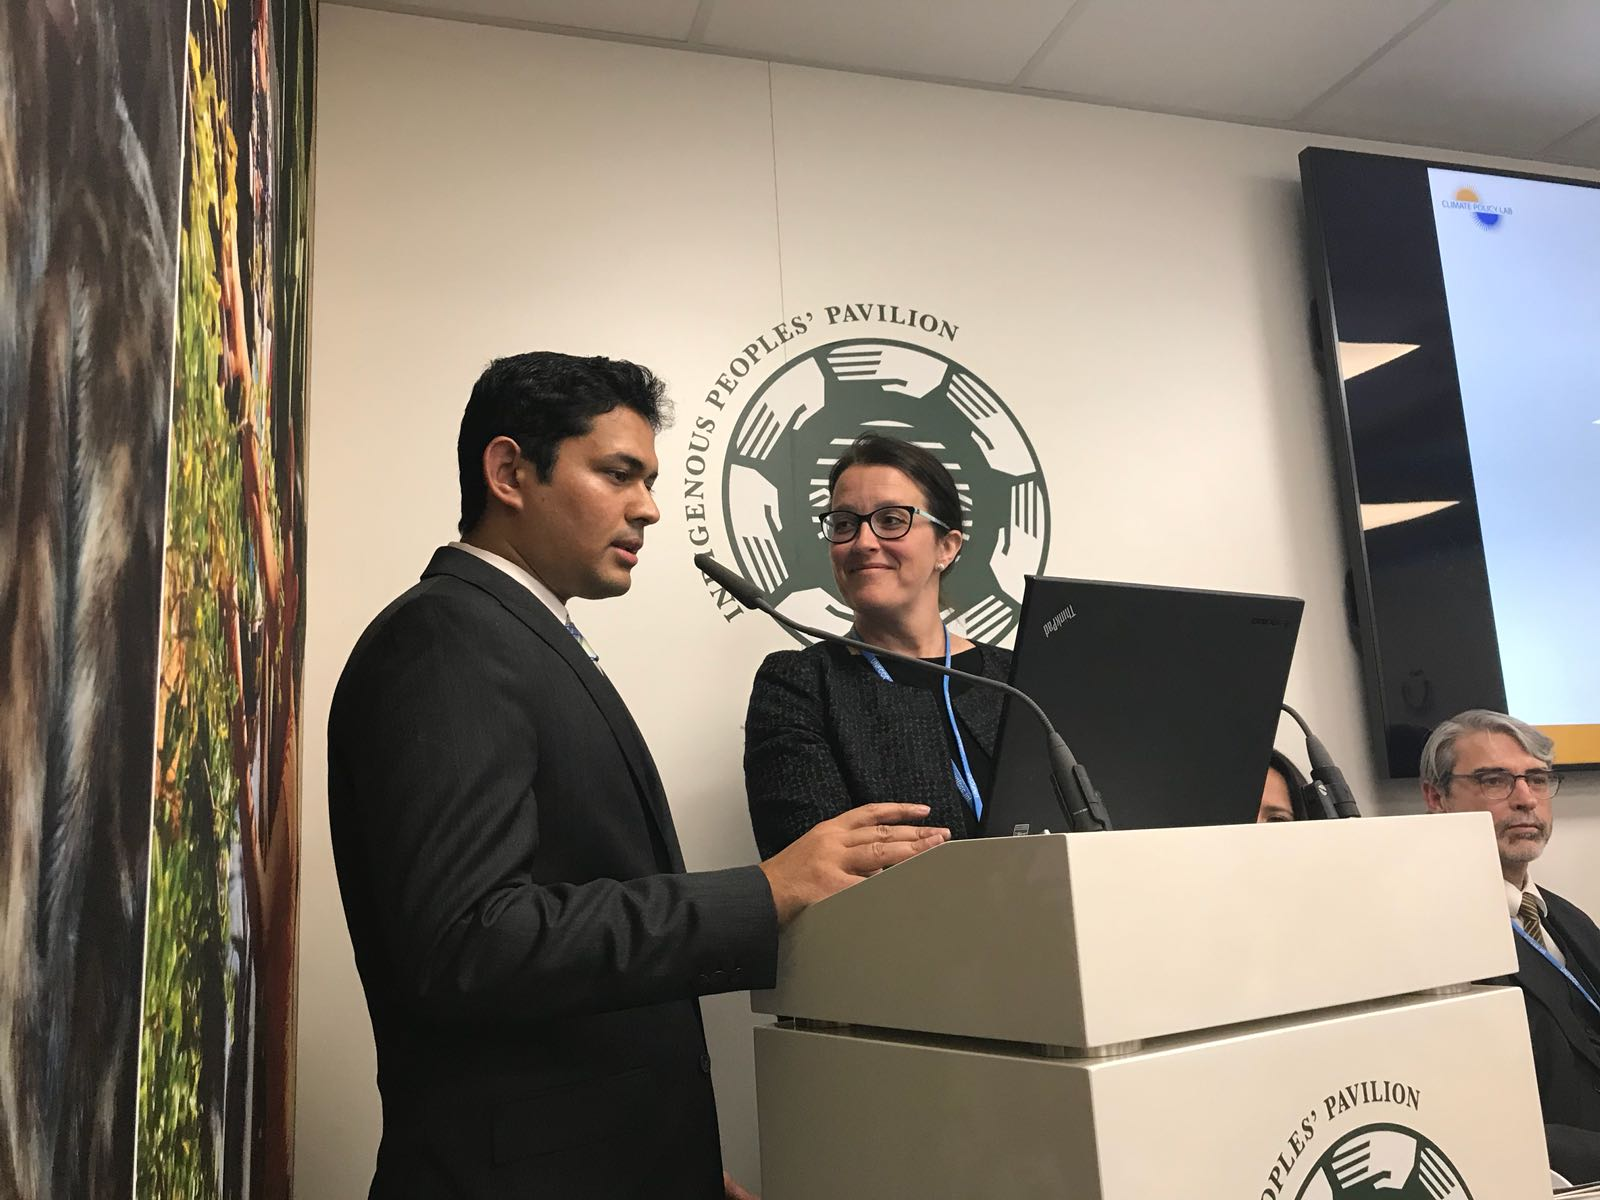 """Professor Kelly Sims Gallagher and predoctoral fellow, Easwaran Narassimhan presenting on their report, """"Carbon Pricing in Practice: A review of Existing Emissions Trading Systems."""""""